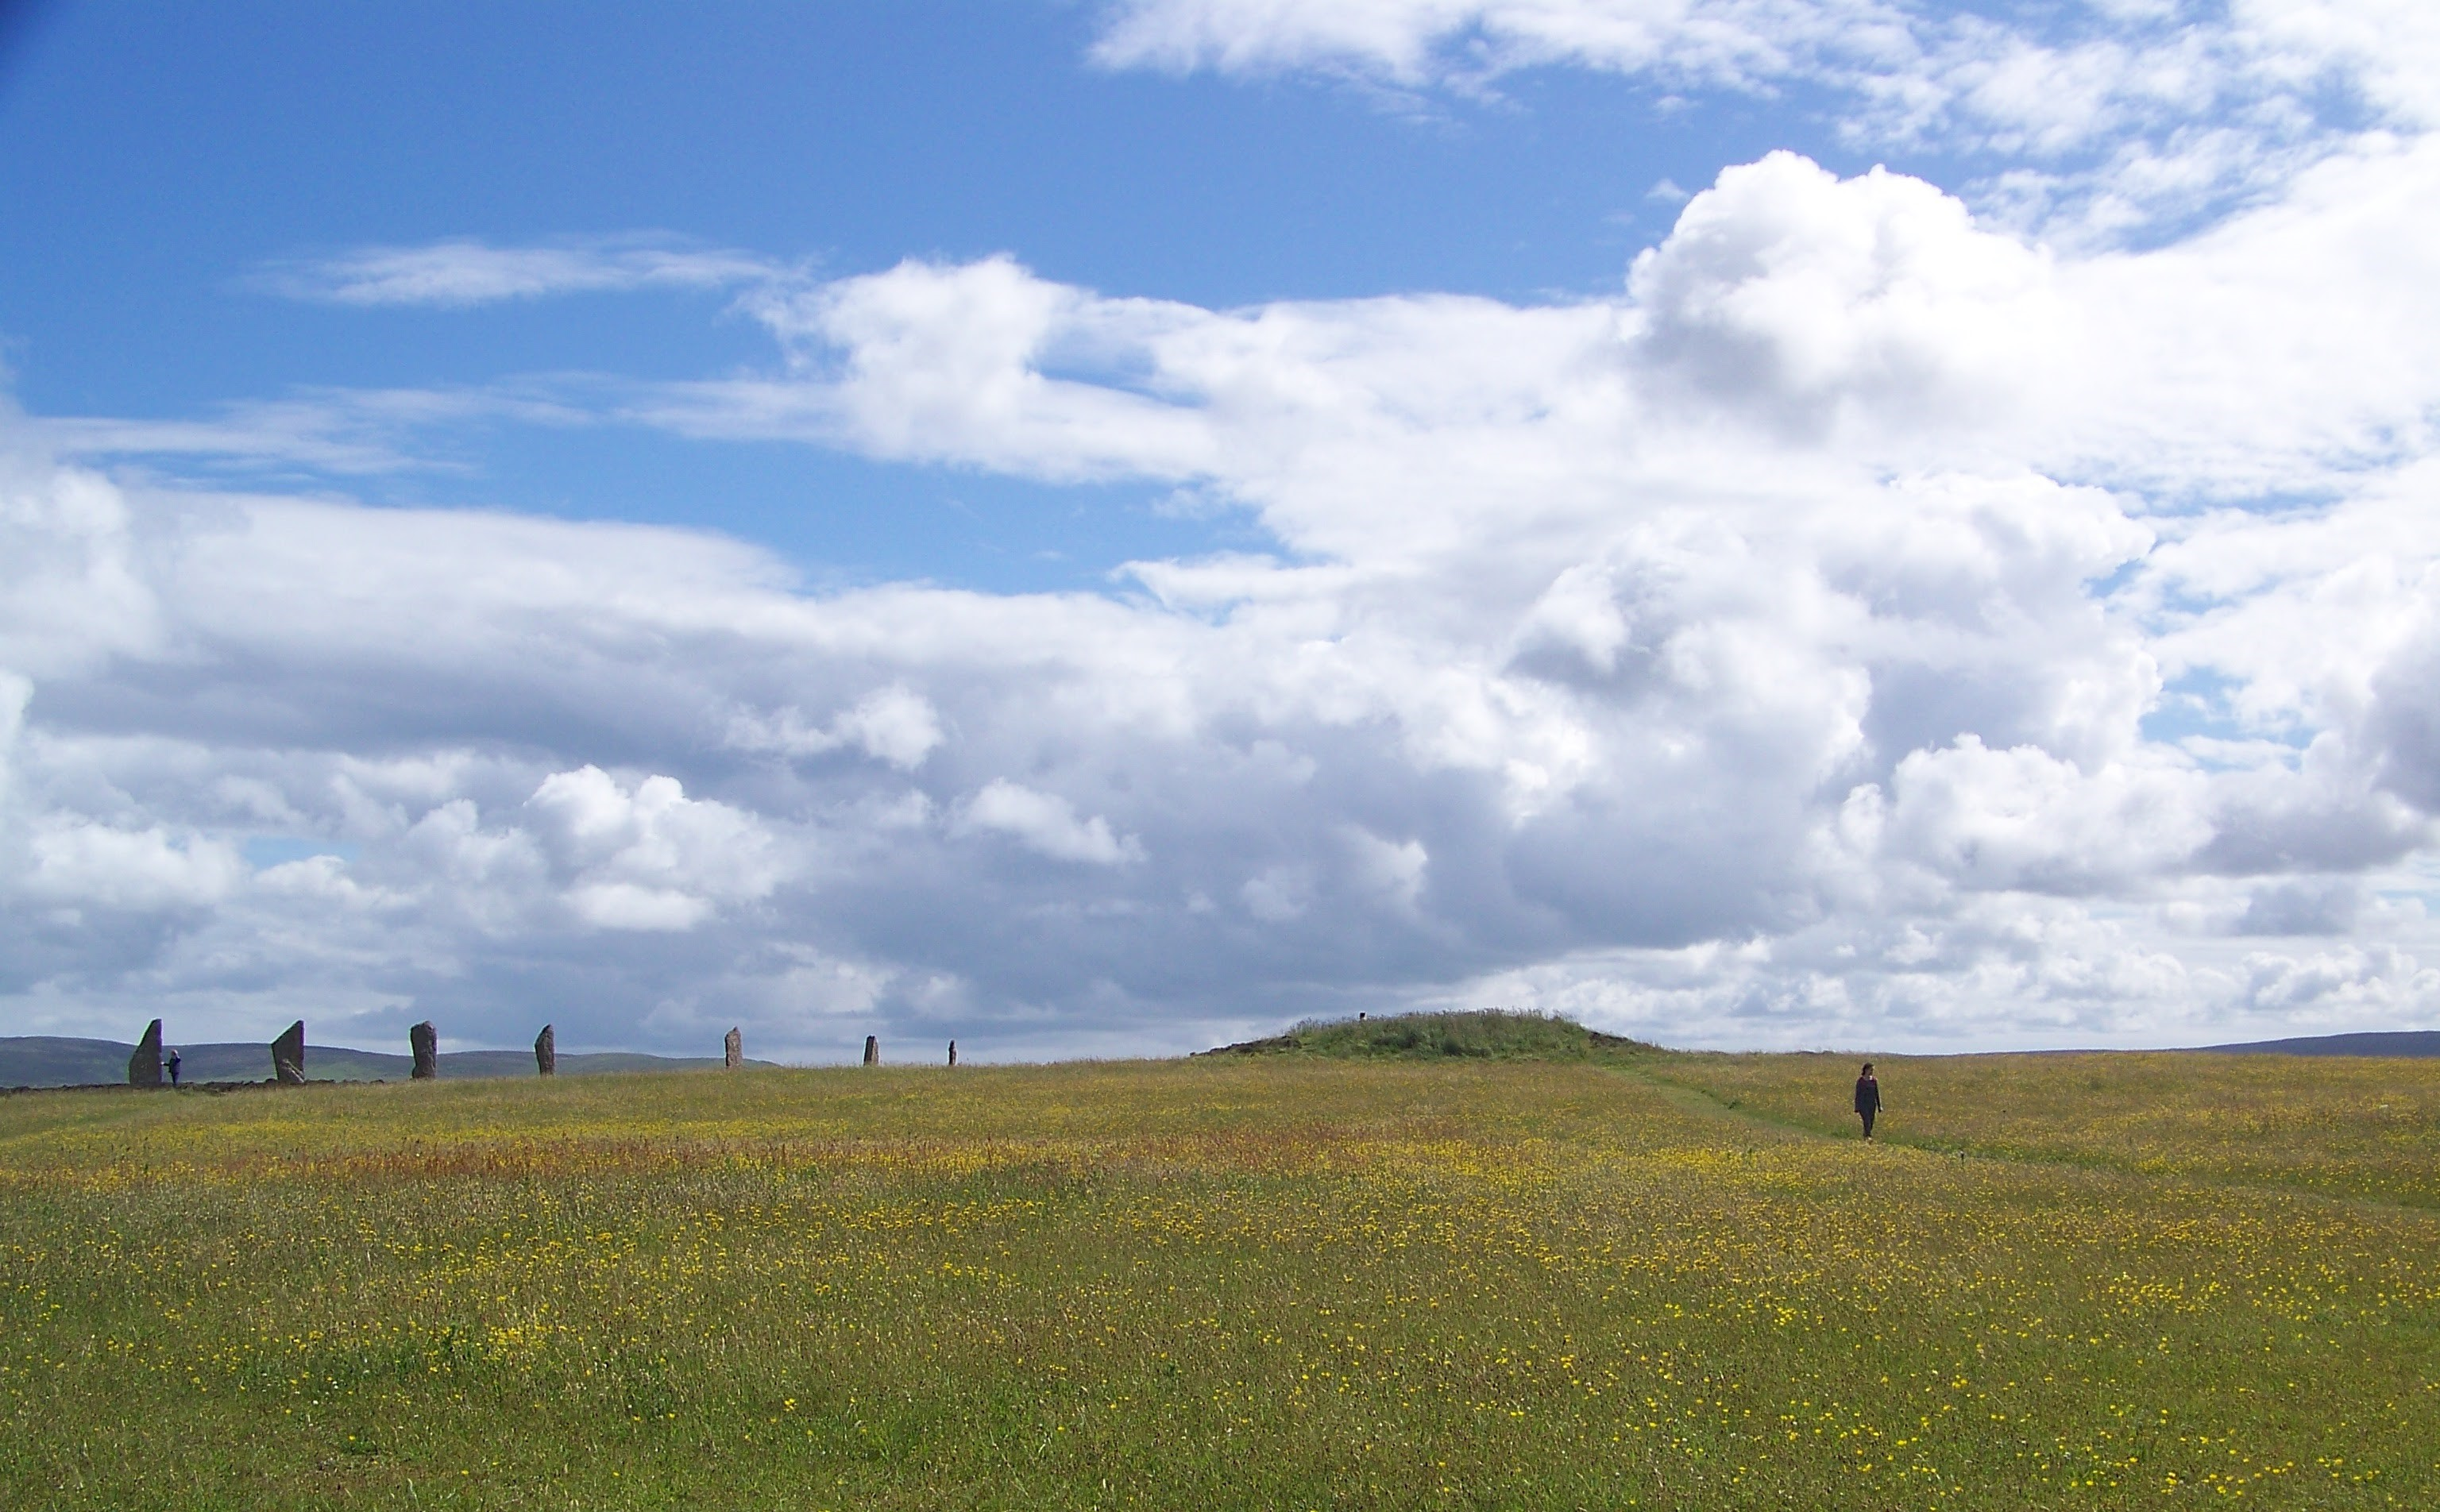 Salt Knowe - a mysterious mound near the stone circle at Brodgar, Orkney Islands, Scotland, UK. www.orkneyology.com